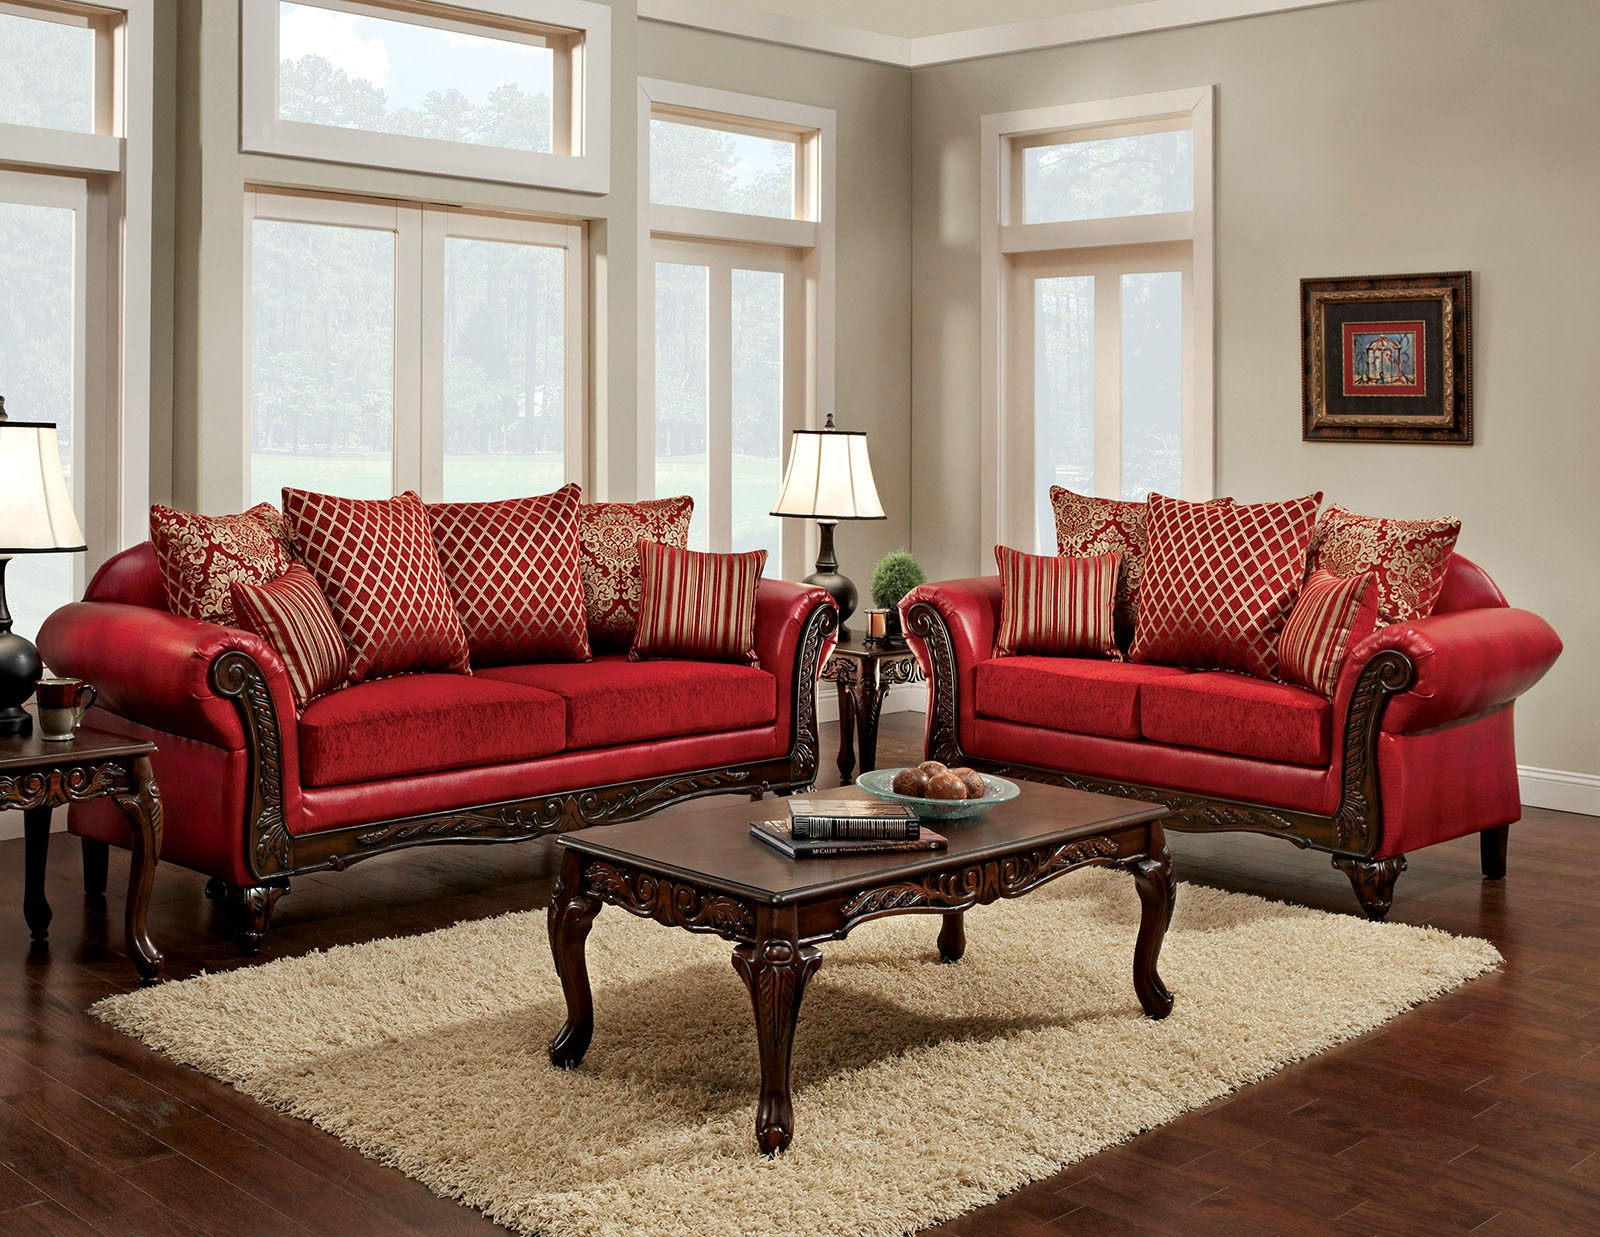 Marcus red living room set sm7640 sf furniture of america for Red living room furniture